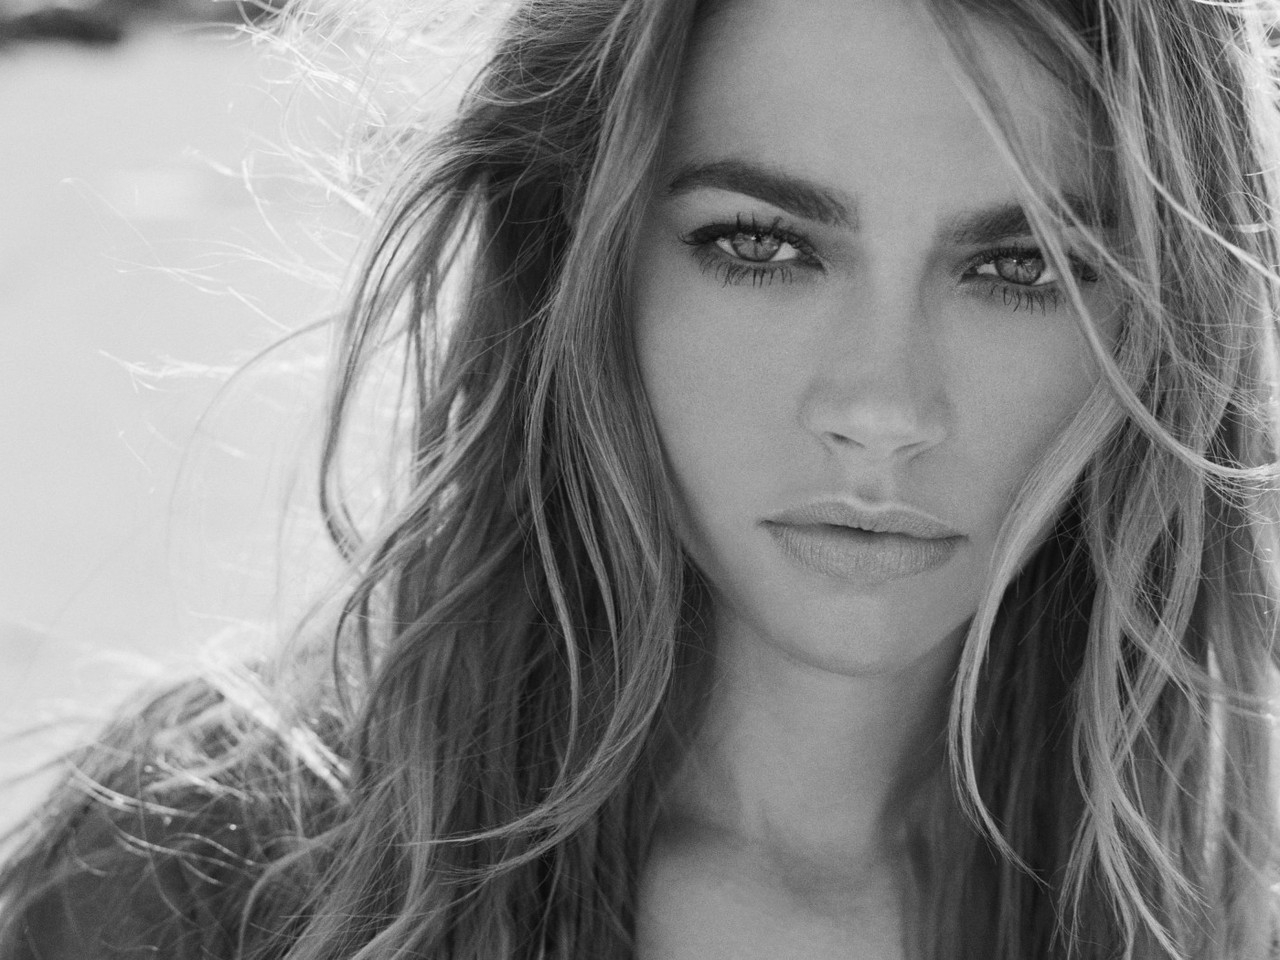 Denise Richards Black and White for 1280 x 960 resolution